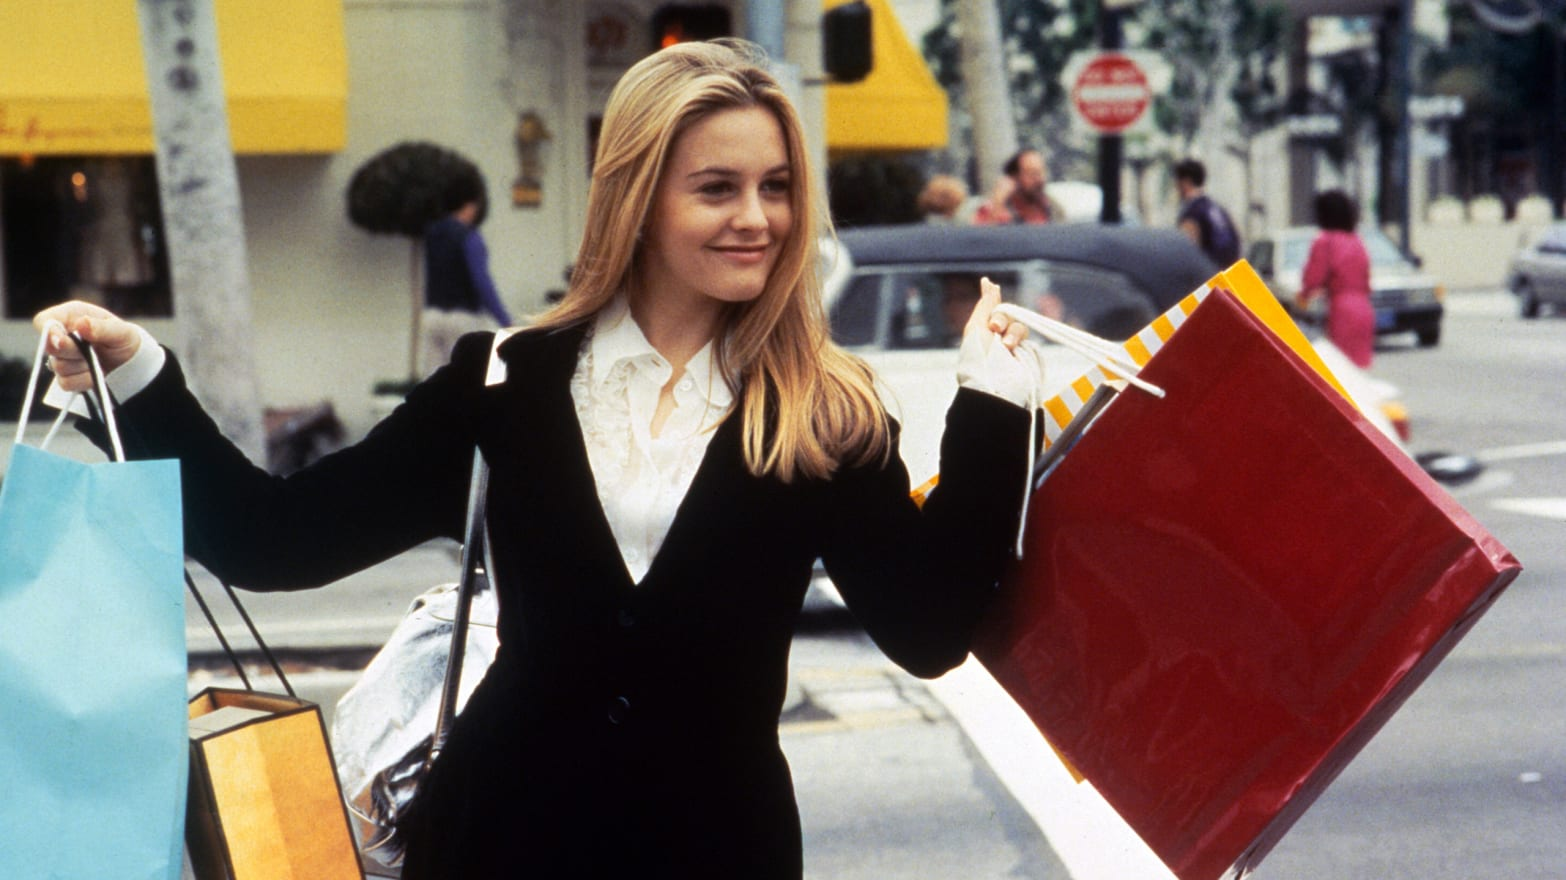 From 'Clueless' to Clueless: Alicia Silverstone's 'The Kind